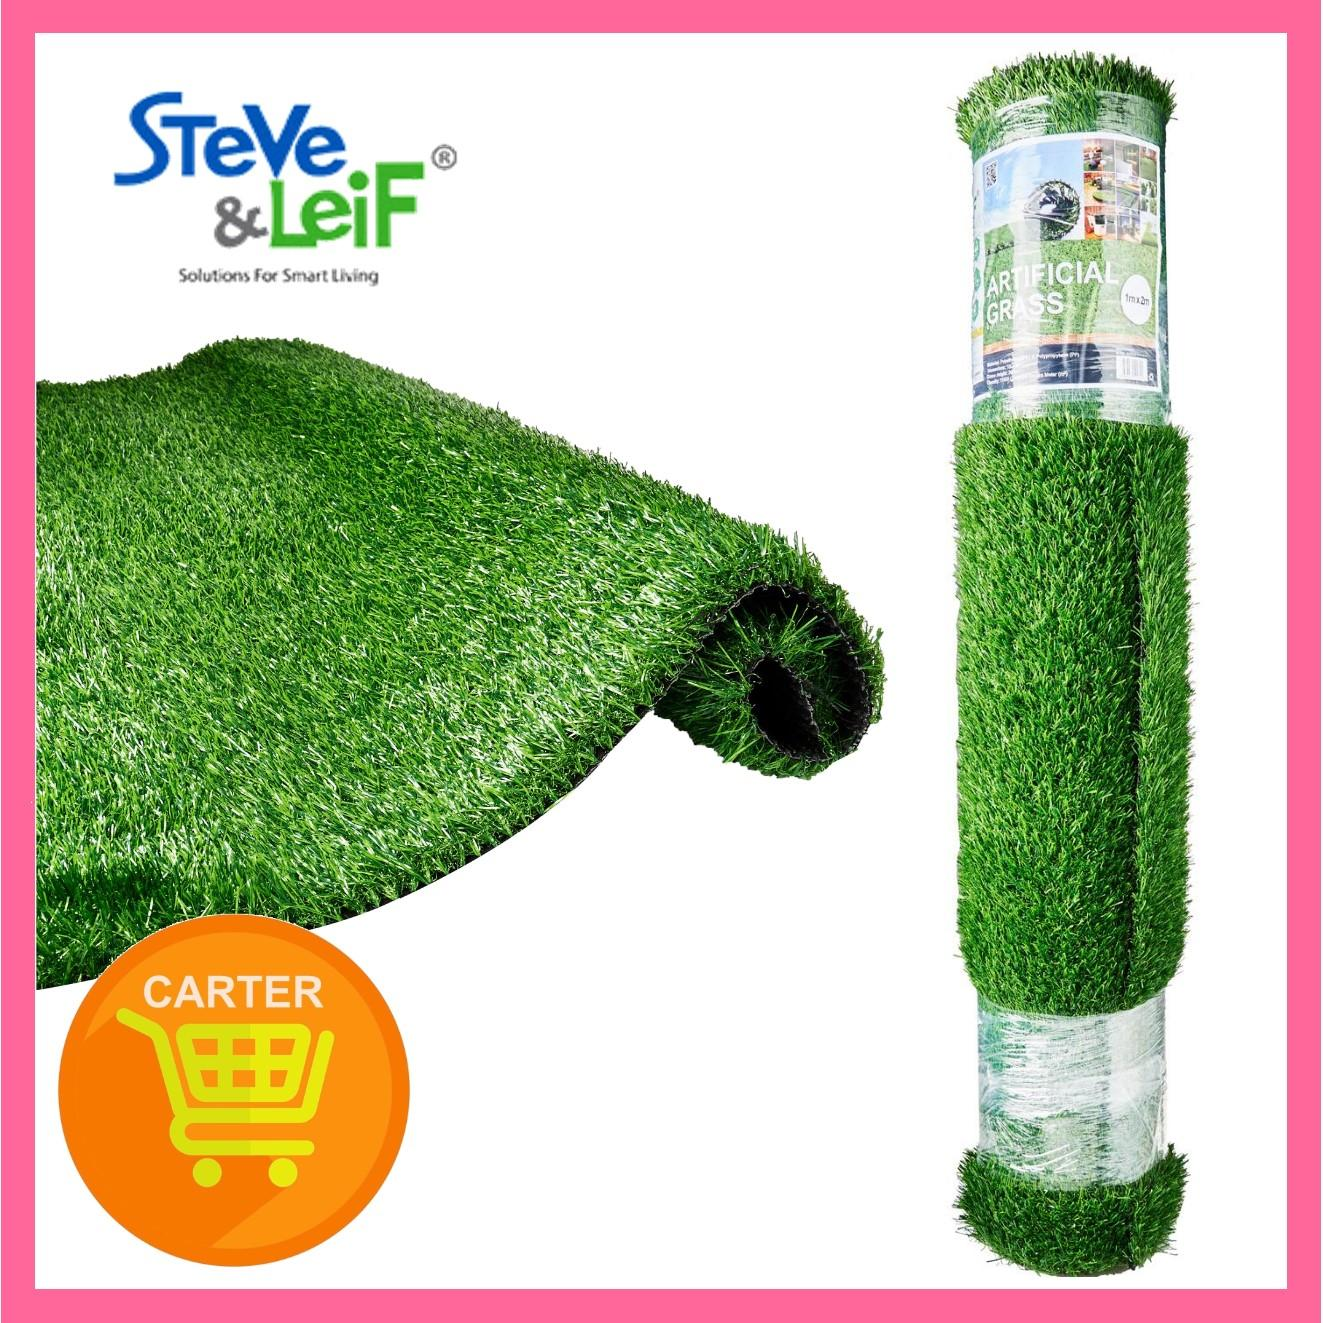 Steve & Leif Artificial Green Grass (1M x 2M)